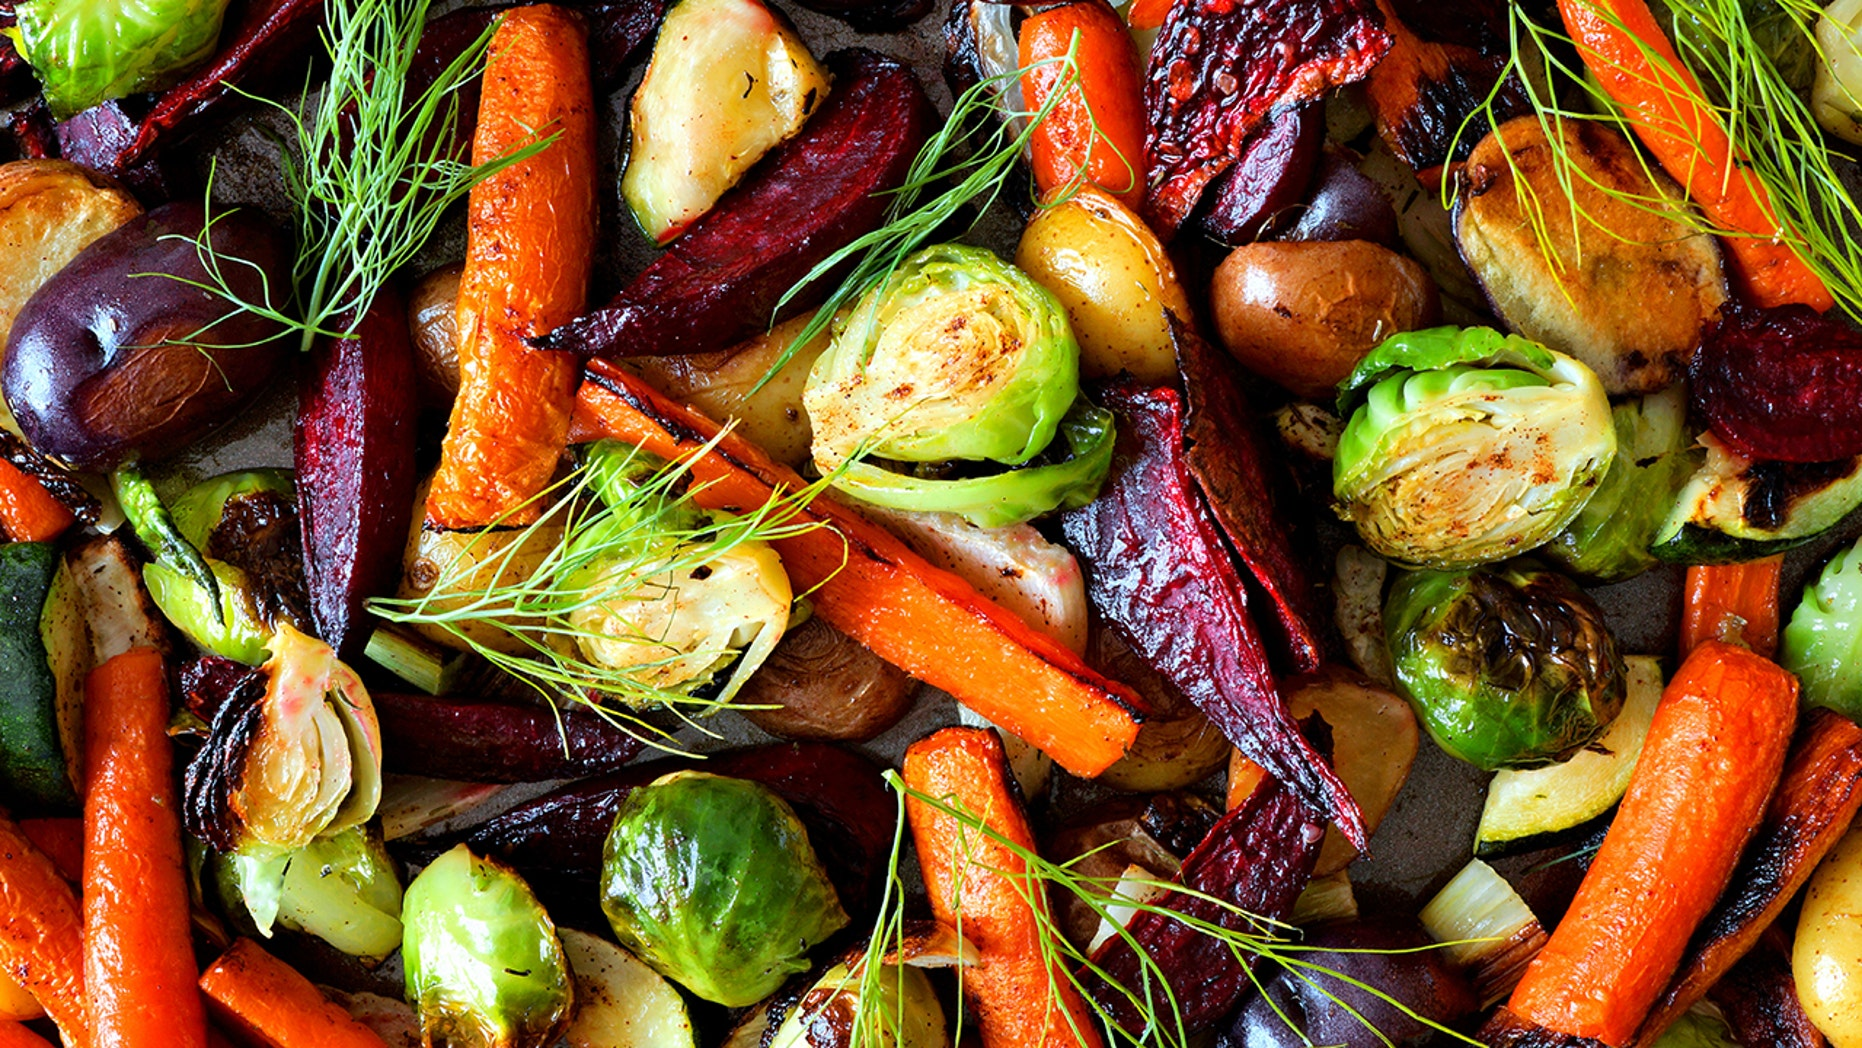 Throw some veggies on the BBQ and grill them up like a pro with these helpful tips.